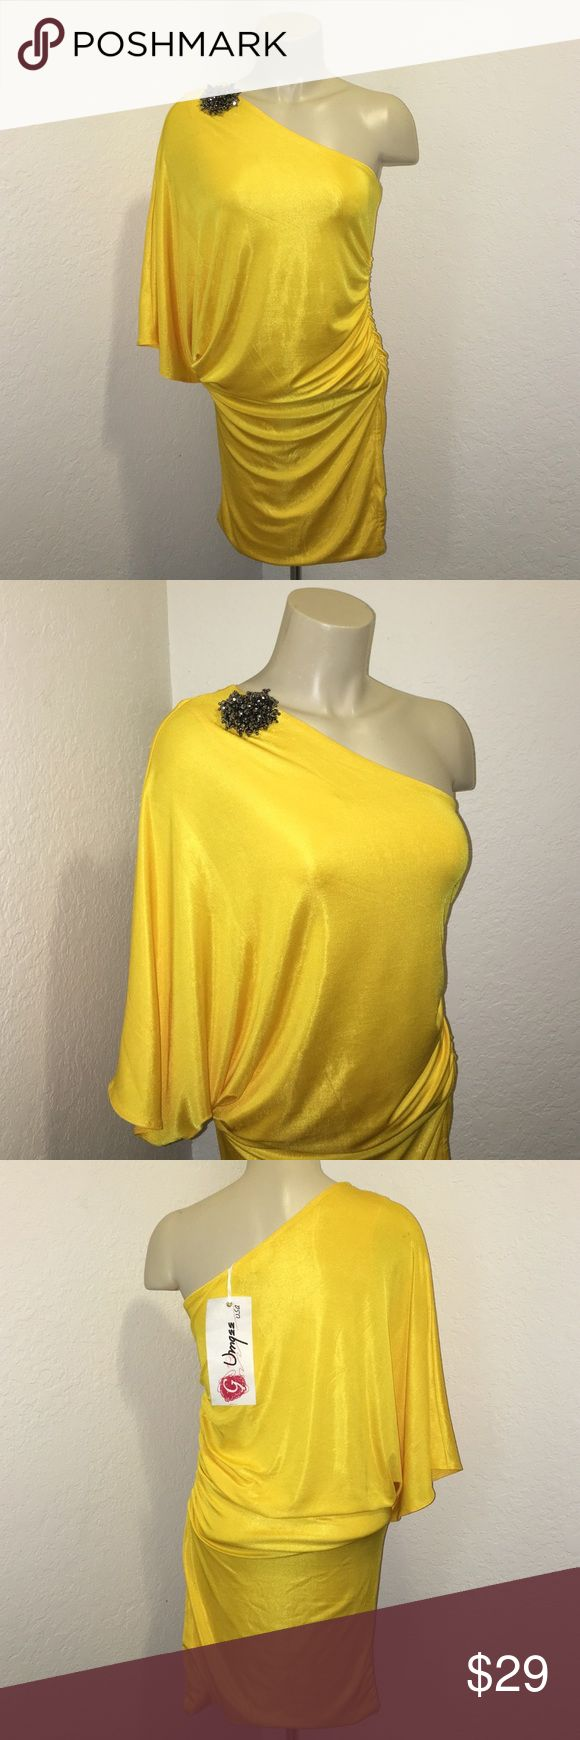 Yellow Jeweled One Shoulder Party Dress Beautiful Yellow One shoulder slouchy top right bottom mini party dress. Available in a variety of sizes. Gorgeous on and perfect for all occasions. Brand: Umgee Umgee Dresses Mini